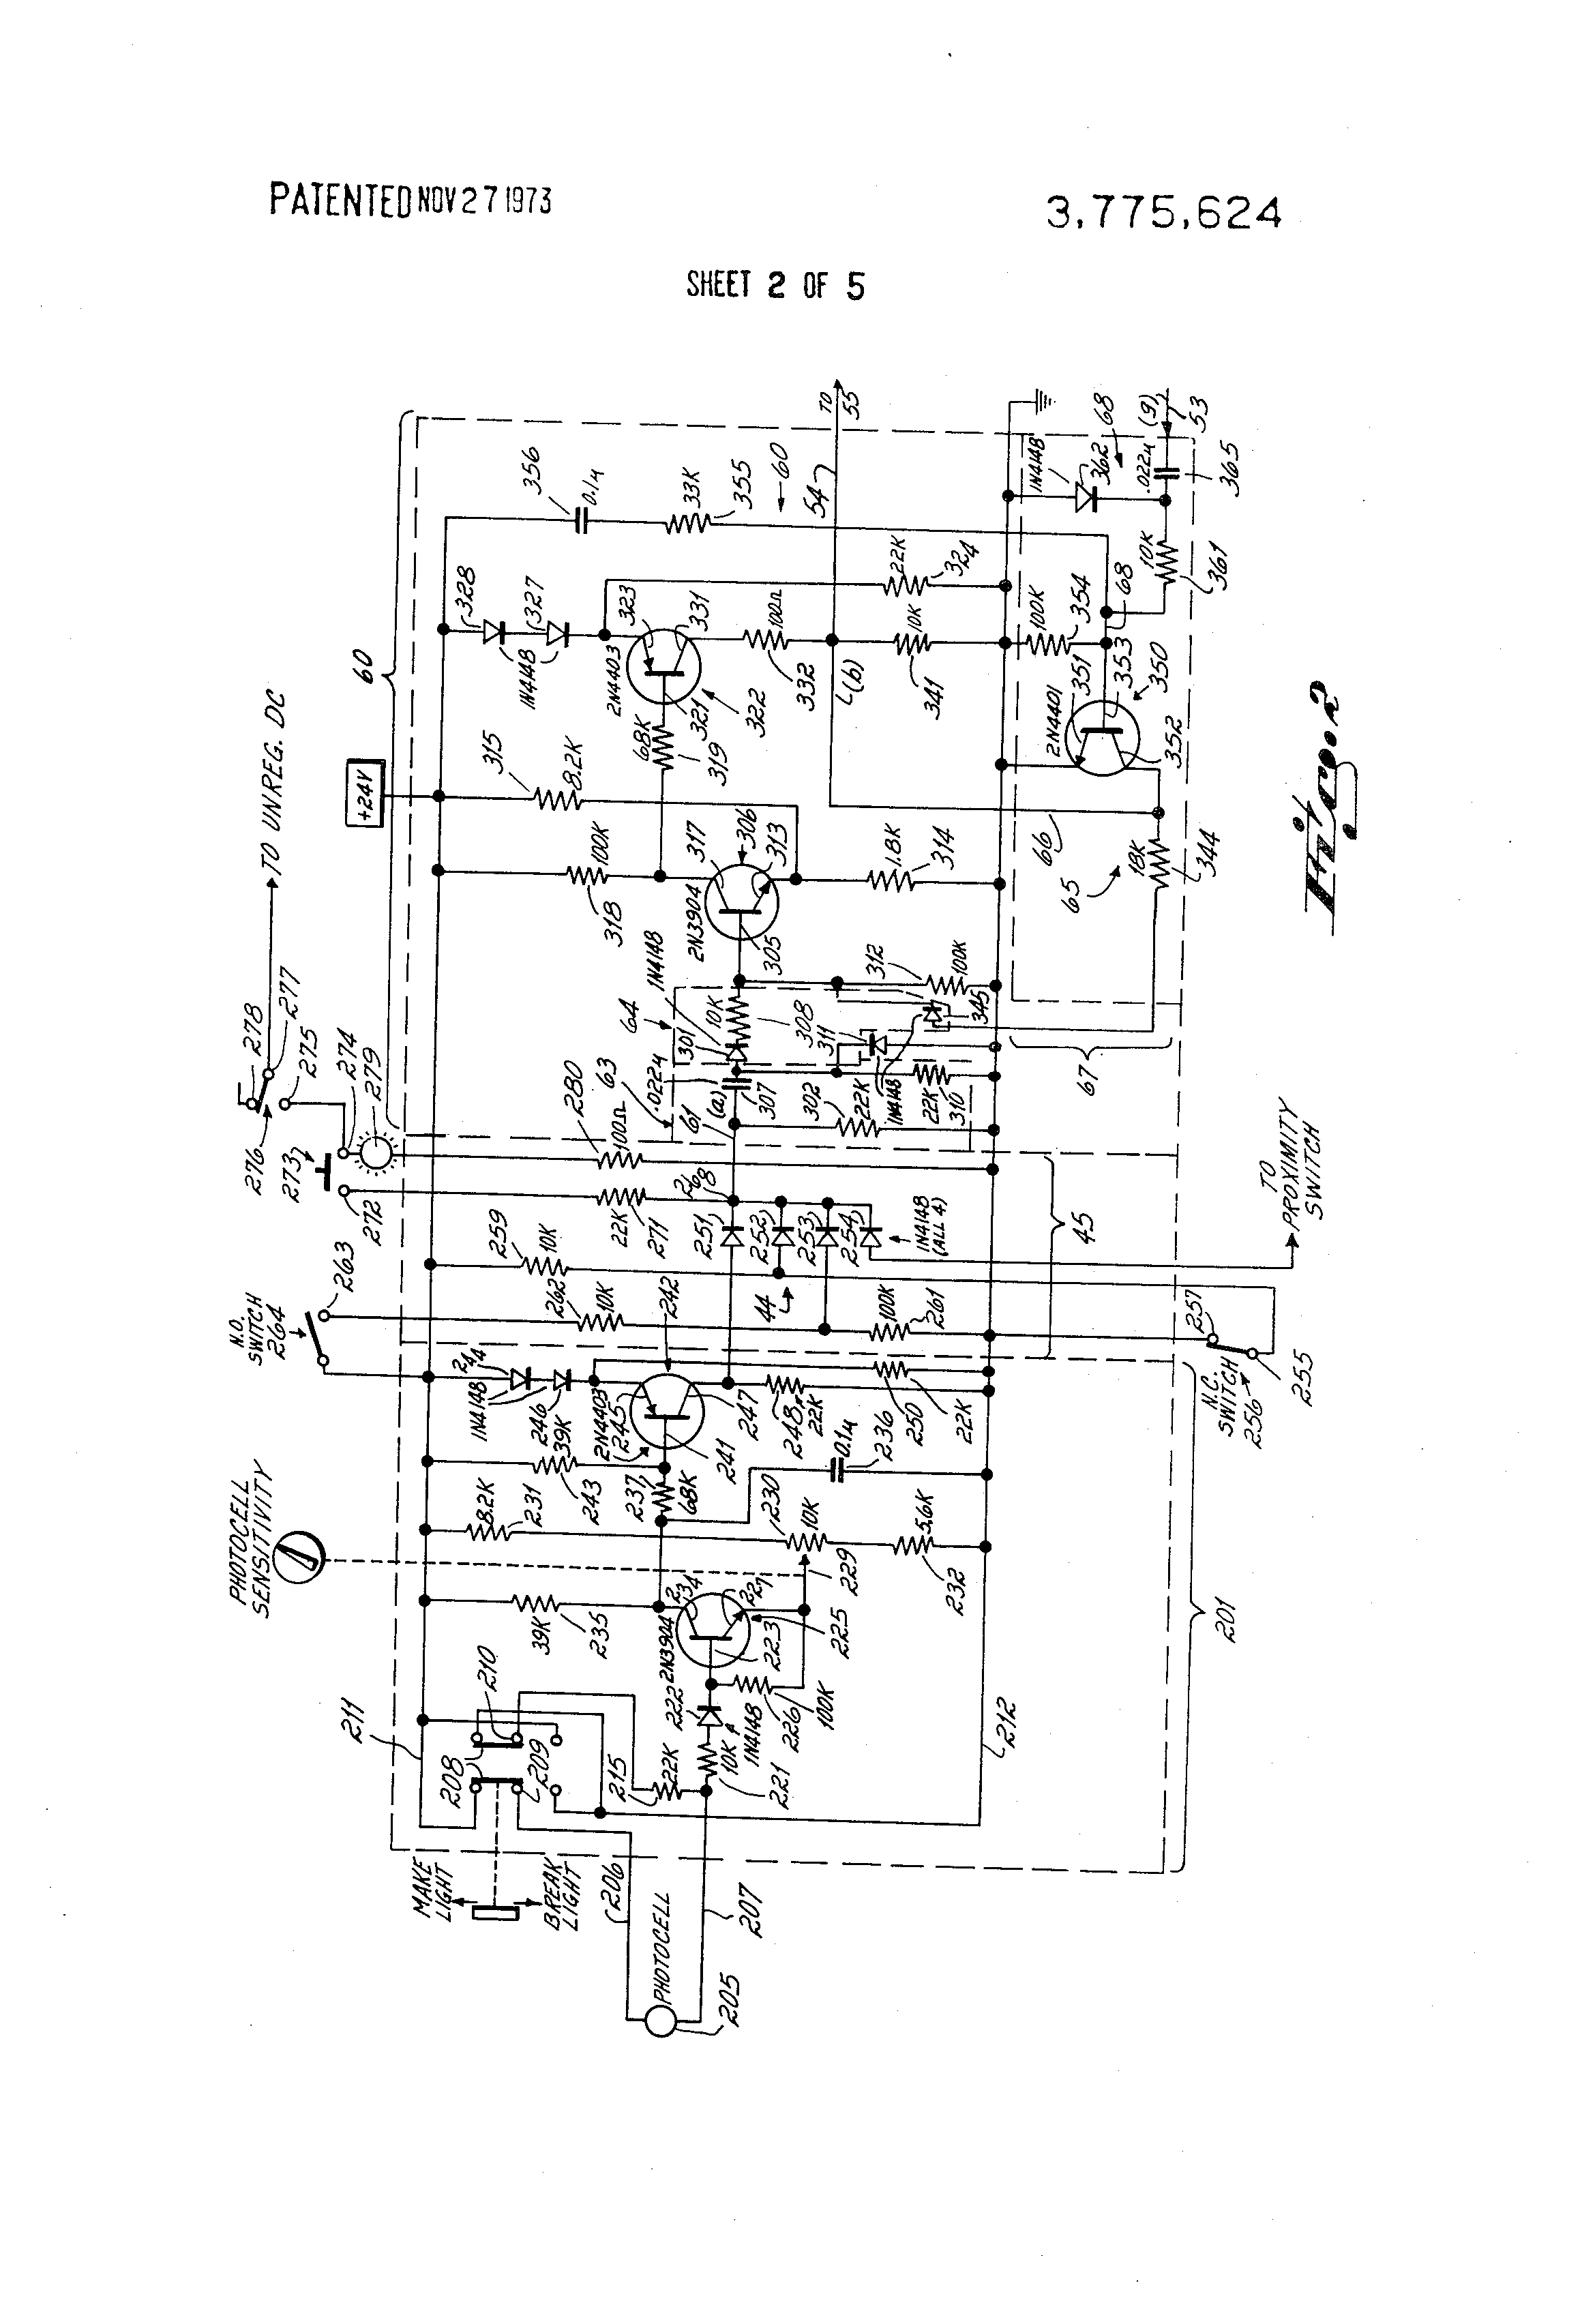 Patent Us3775624 Control Circuit For Generating Output Signal Of Wiring Diagram Additionally Pnp Or Npn Proximity Sensor On Drawing